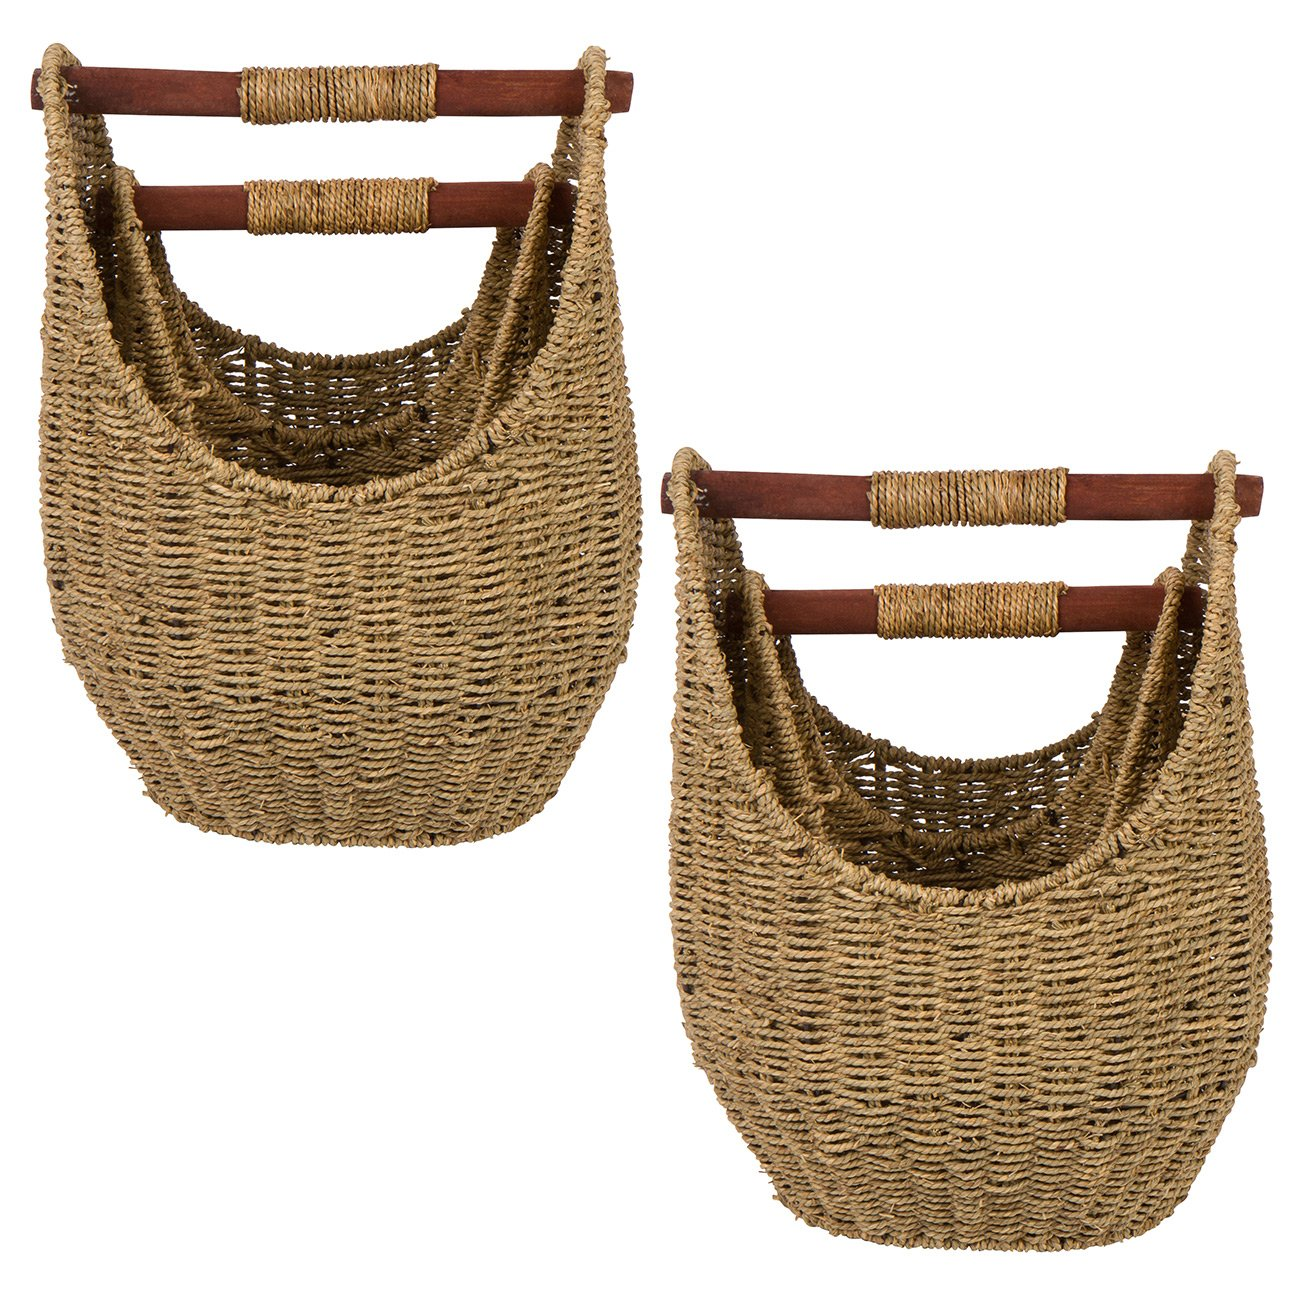 Trademark Innovations 15.7'' & 12.5'' Seagrass Baskets with Wooden Handles - Set of 4